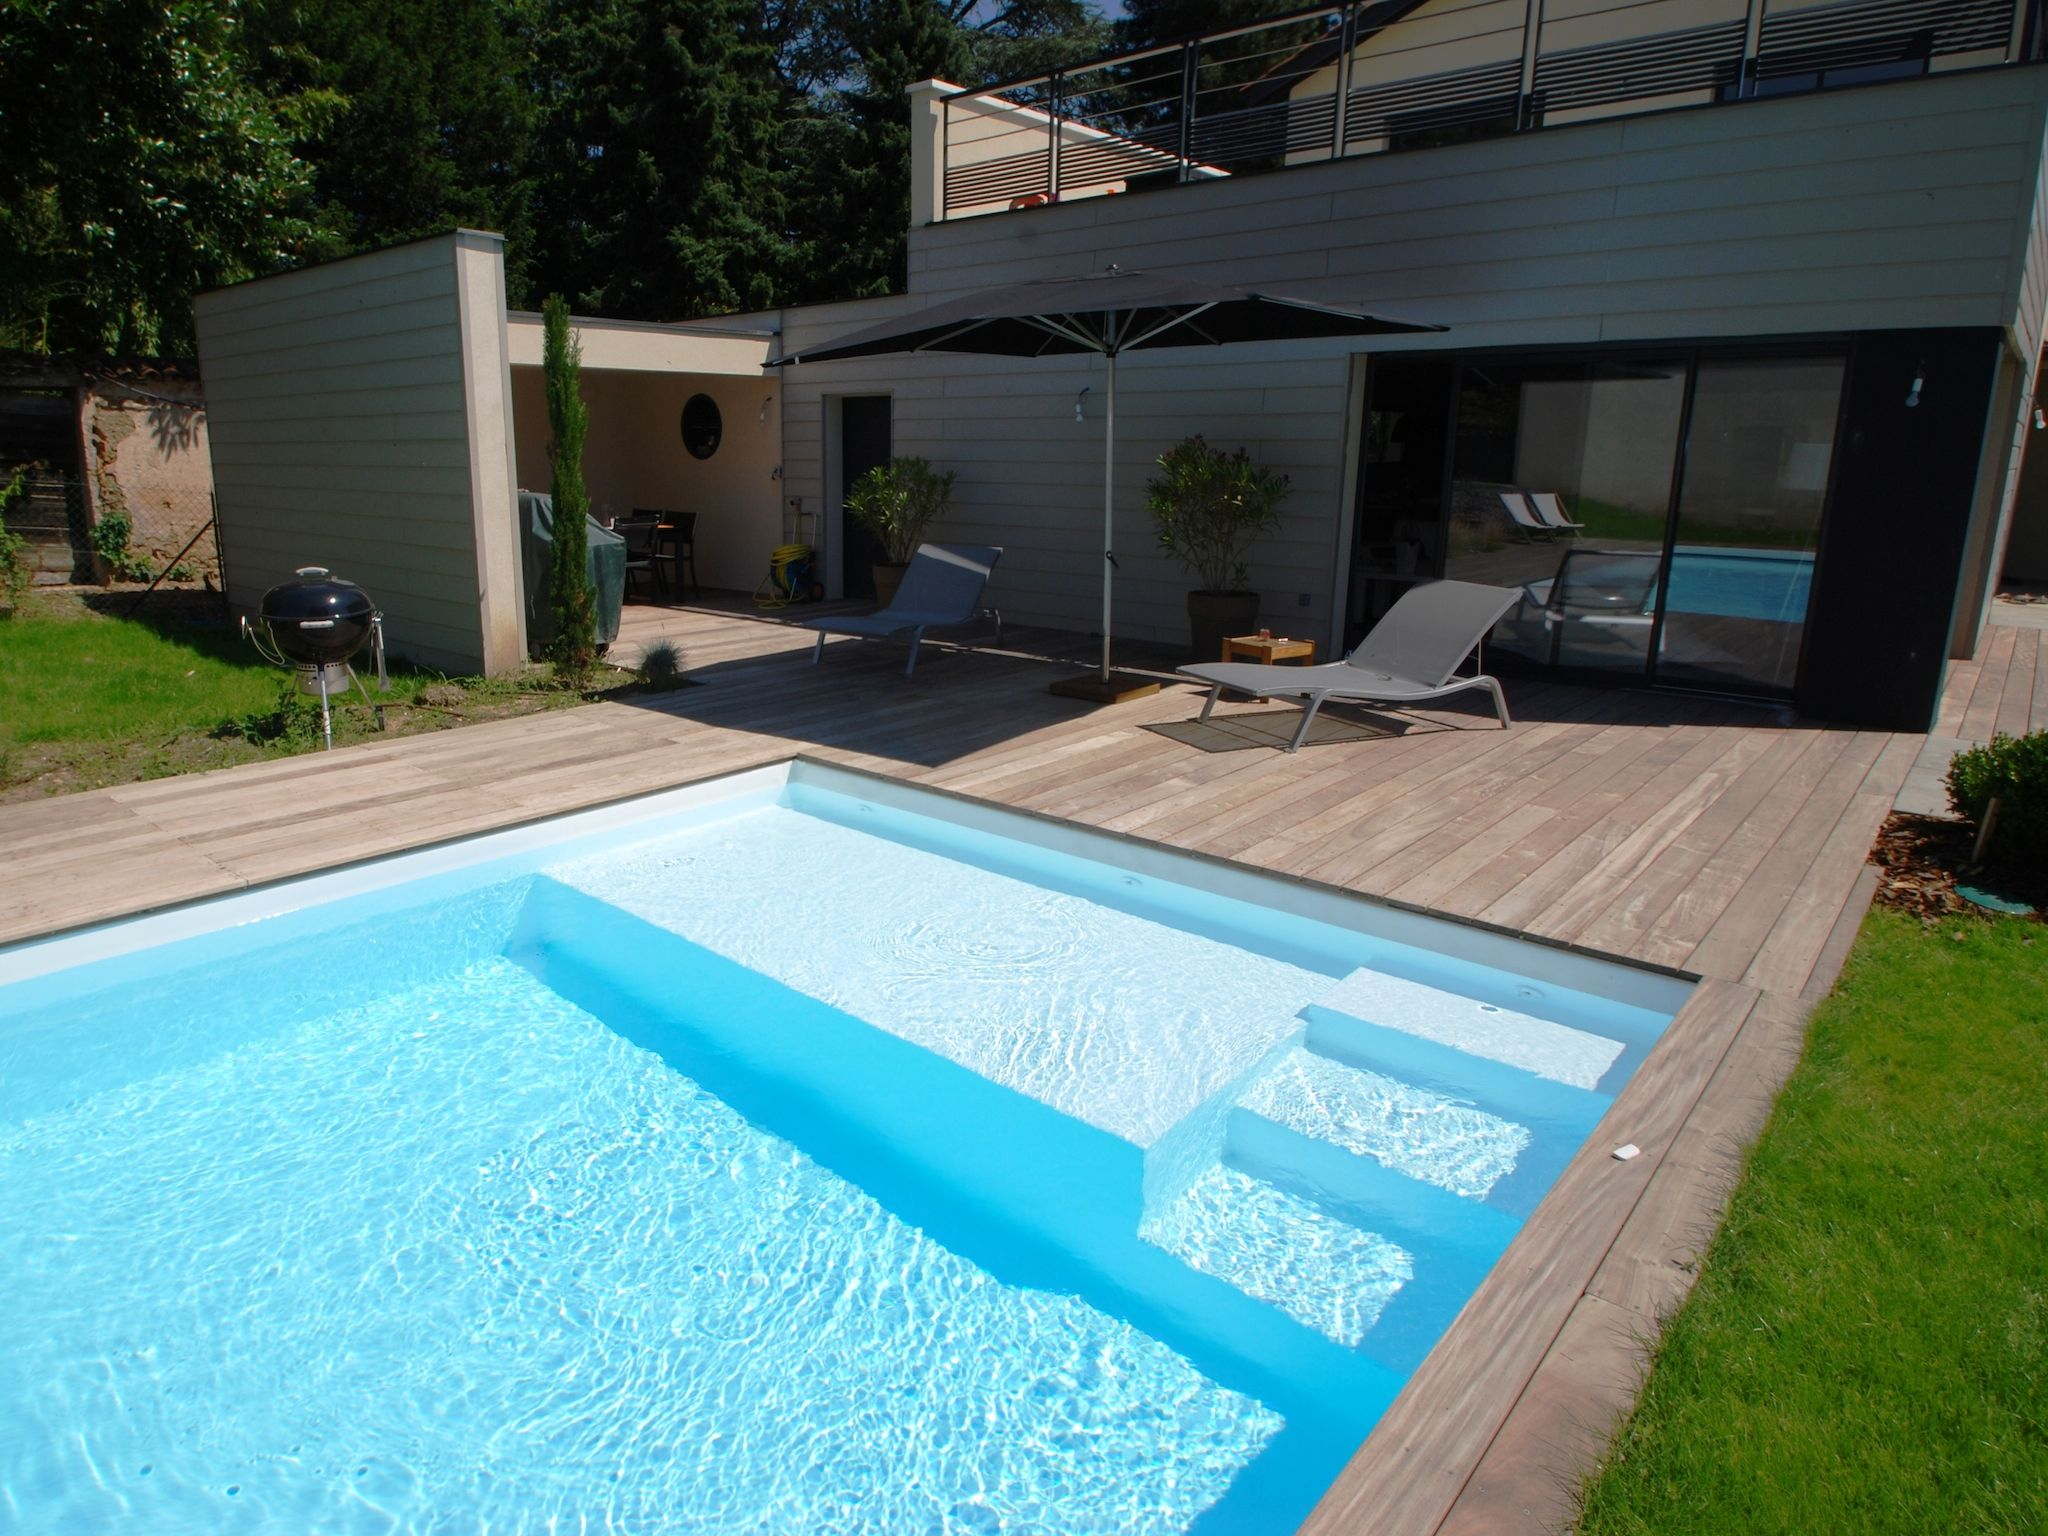 Escalier piscine avec plage ph25 jornalagora for Piscine design plage